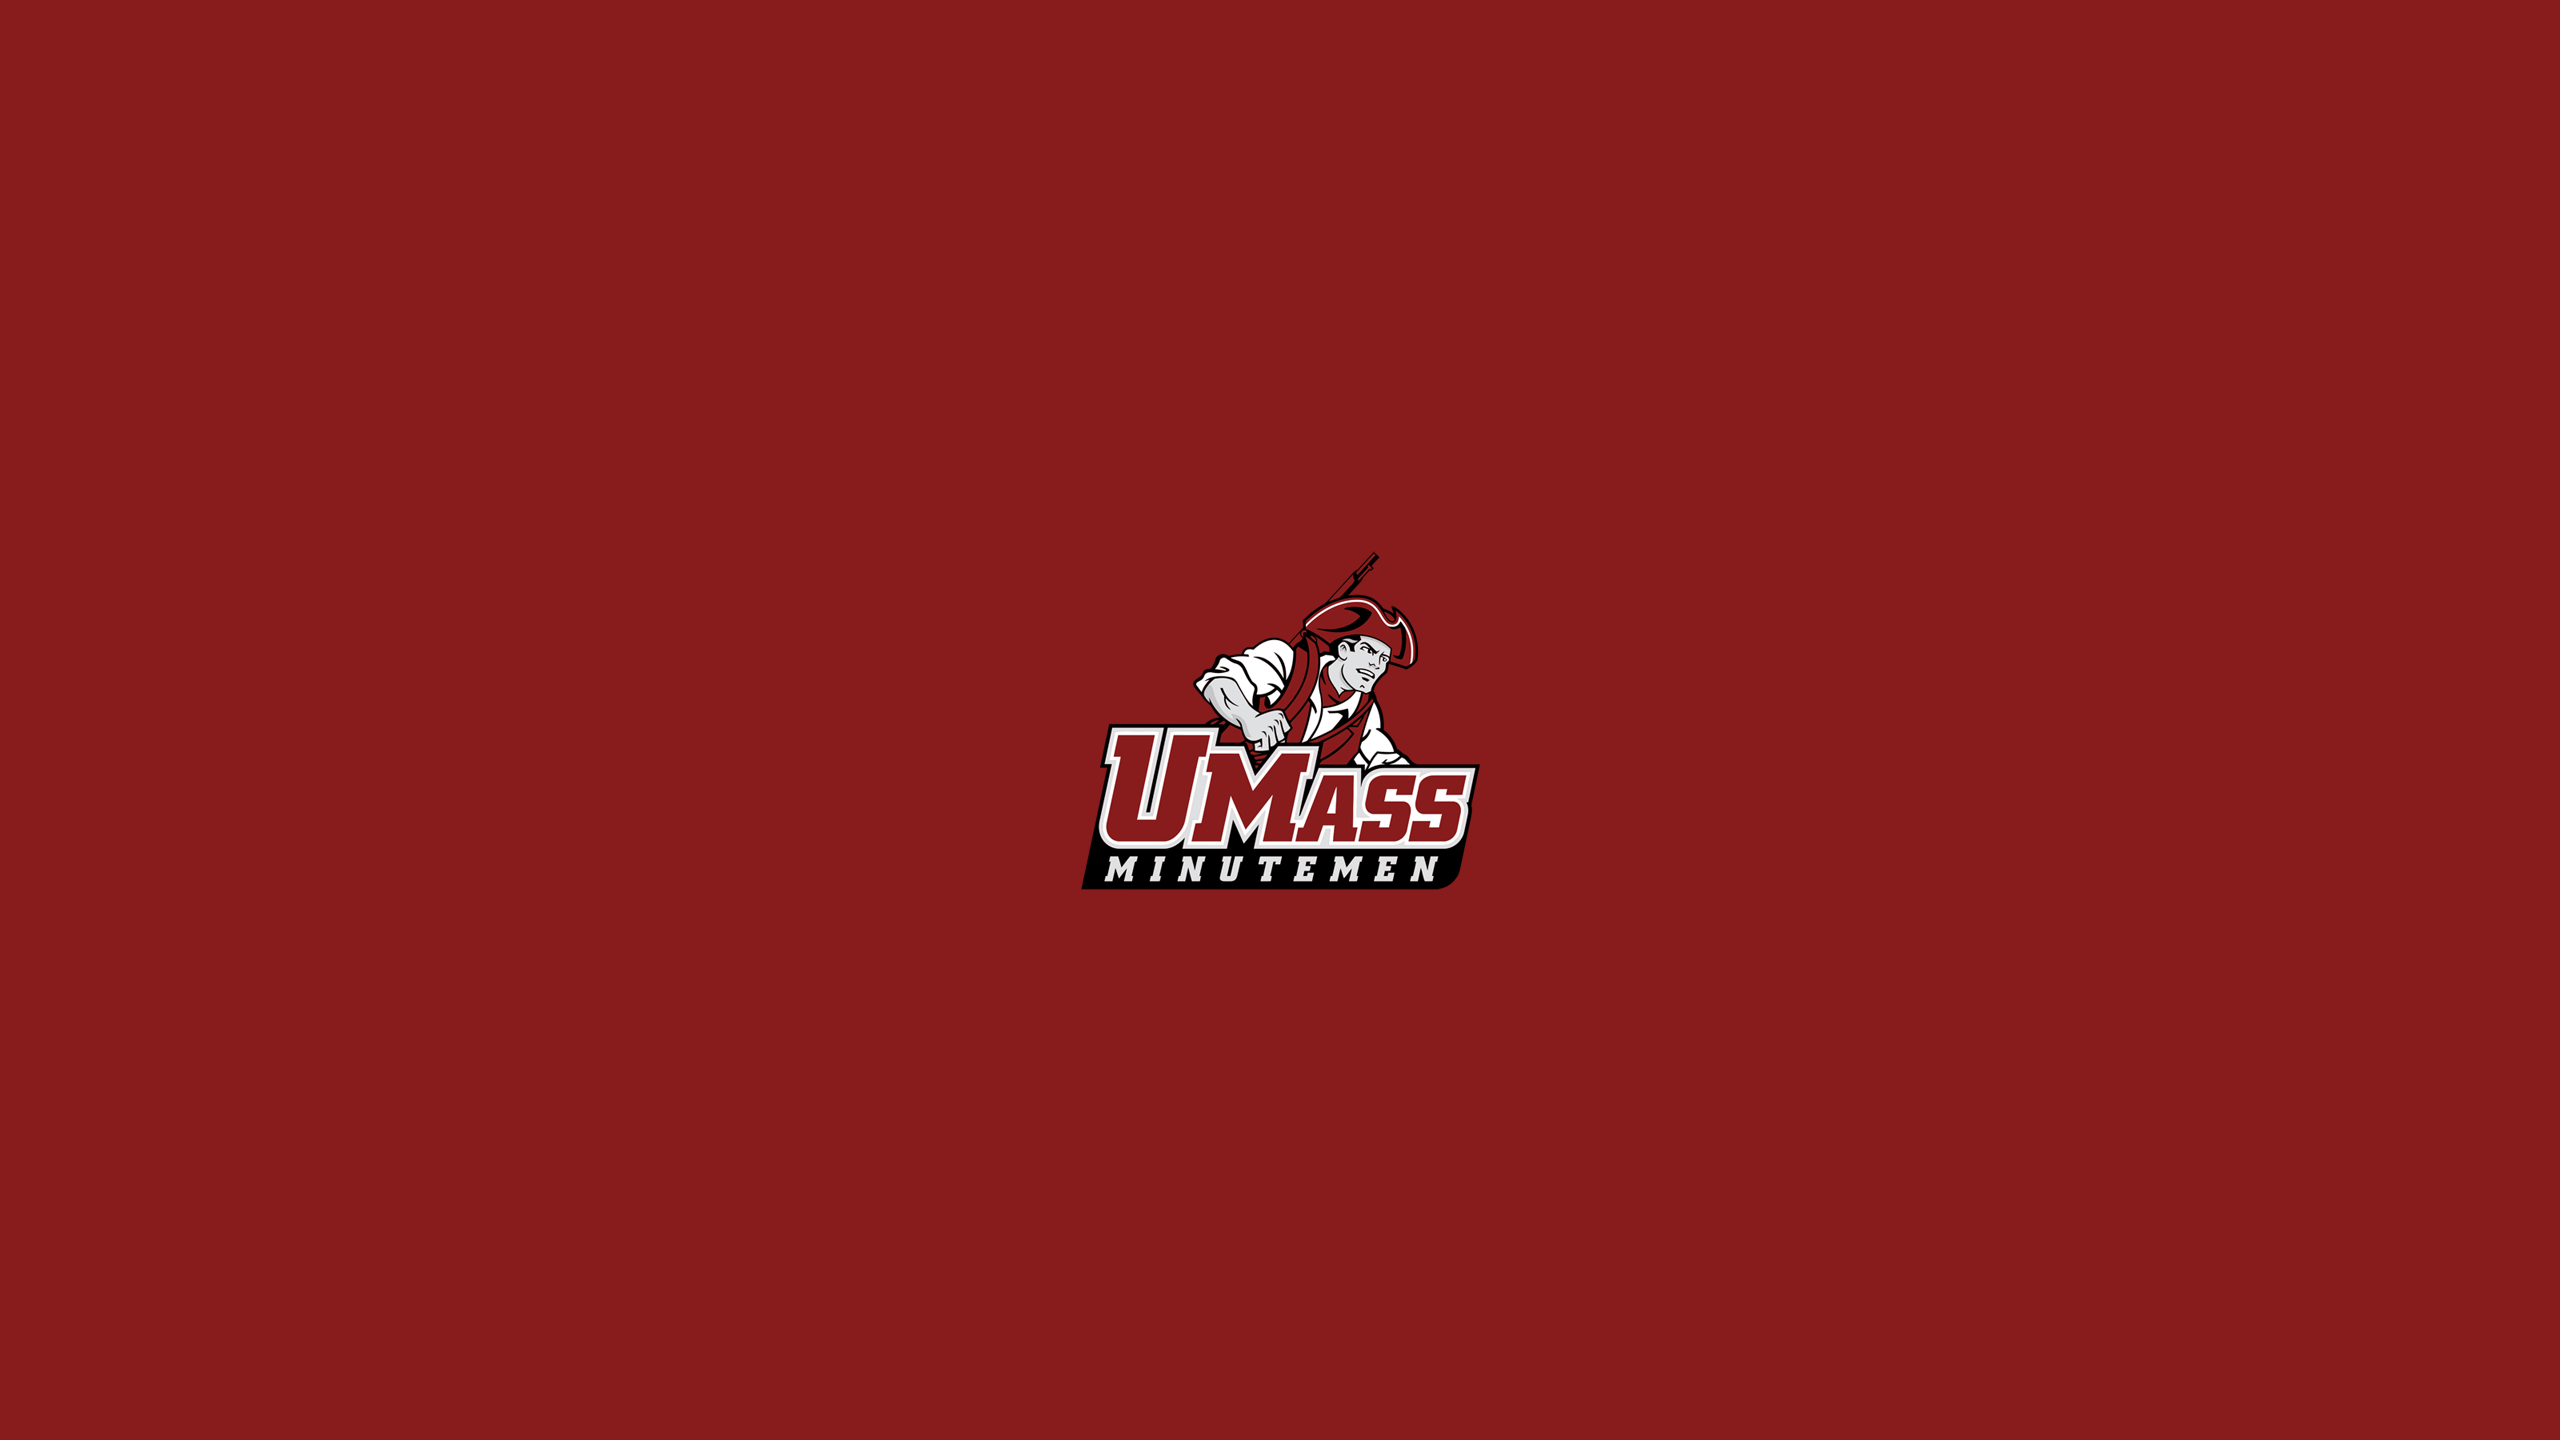 University of Massachusetts Minutemen